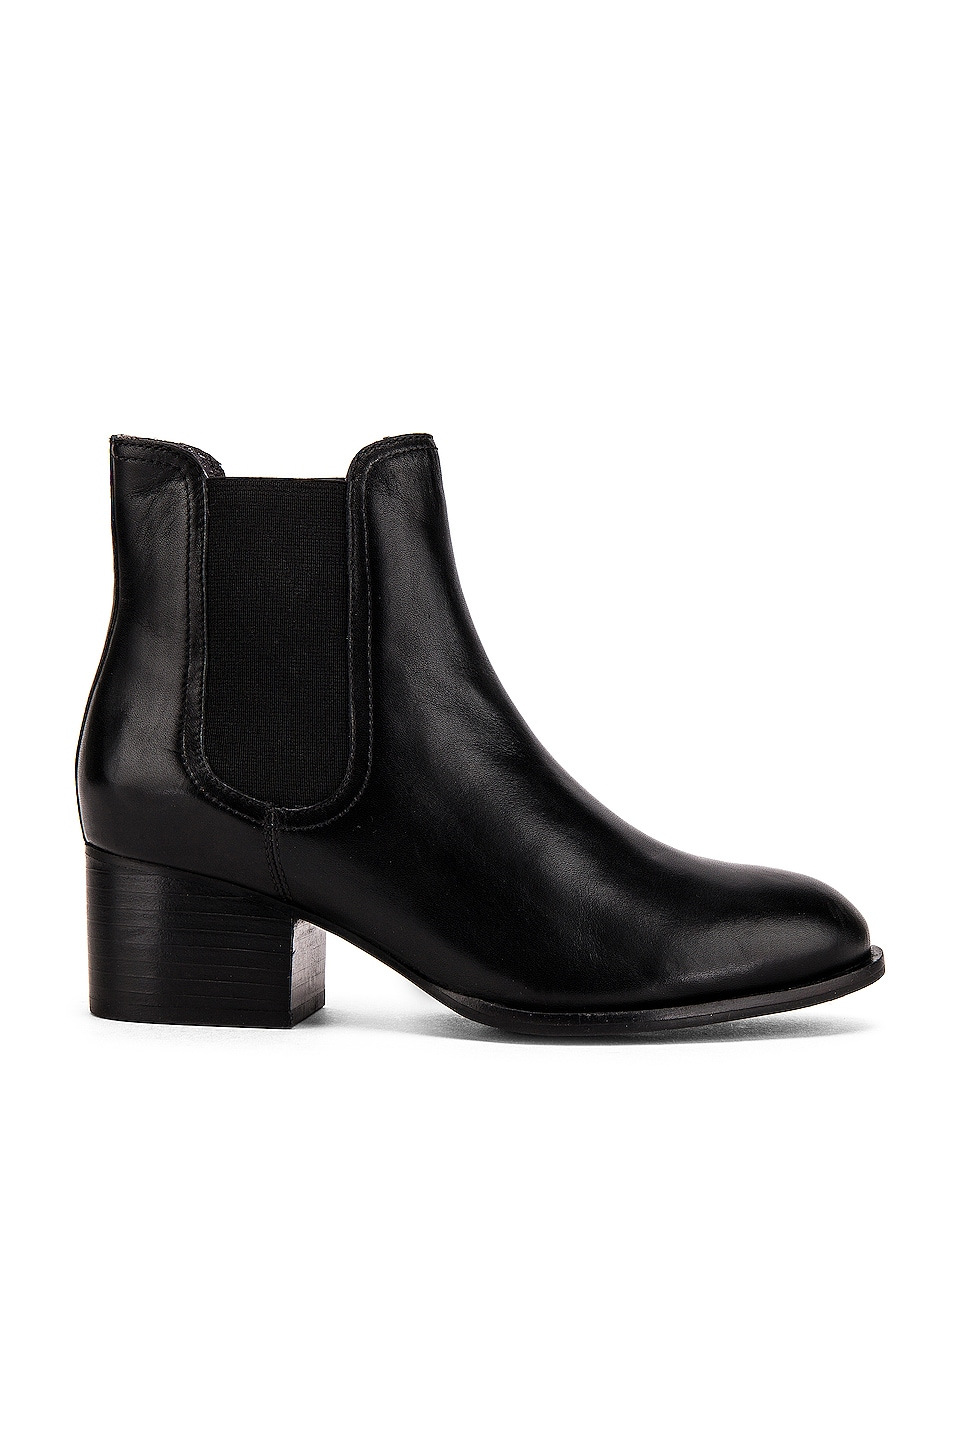 Seychelles In A Trance Bootie in Black Leather